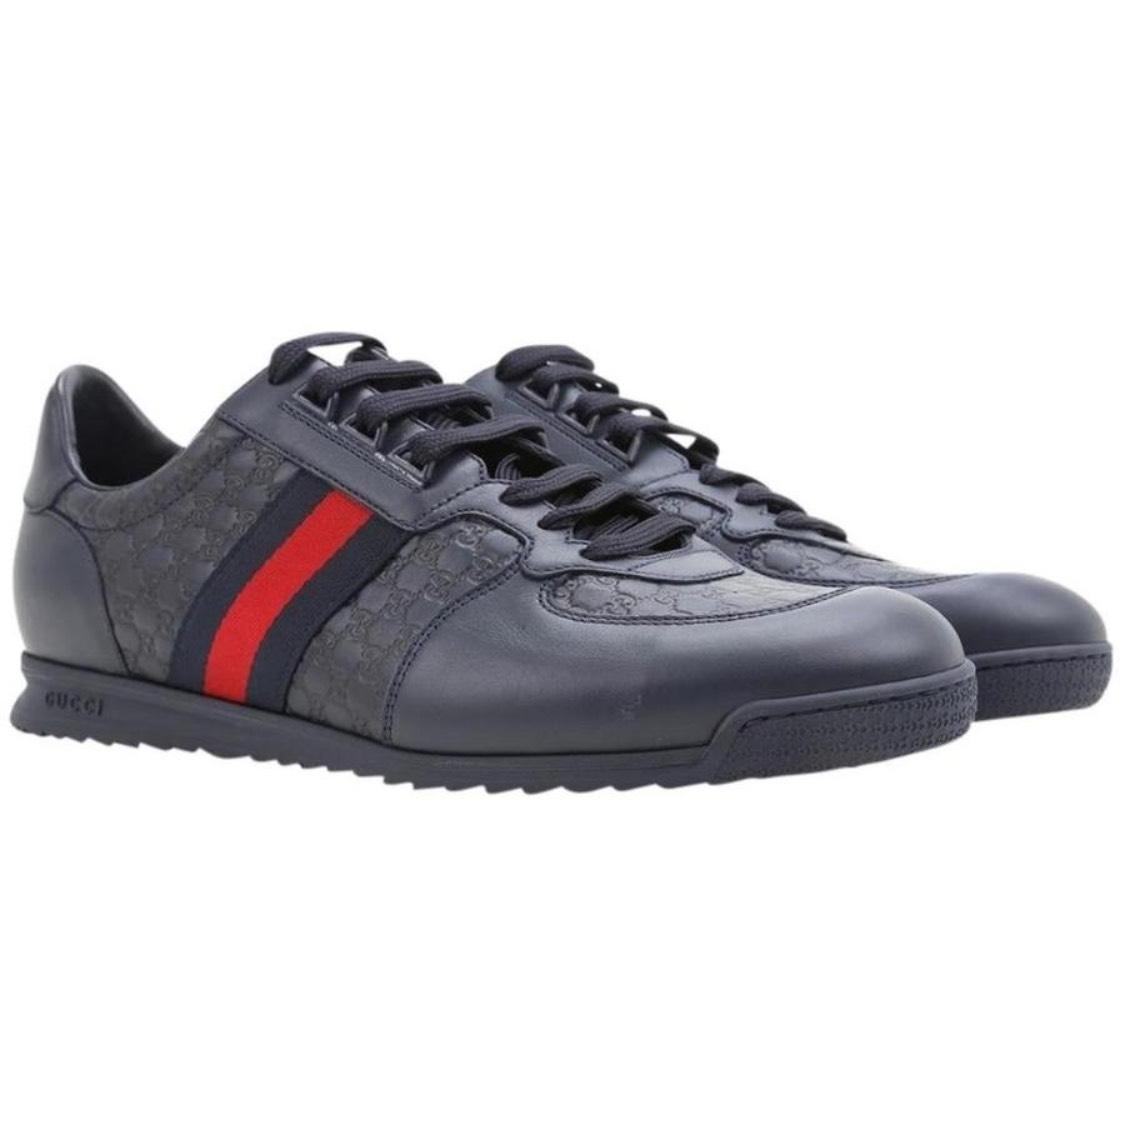 gucci shoes for sale. gucci navy athletic shoes for sale